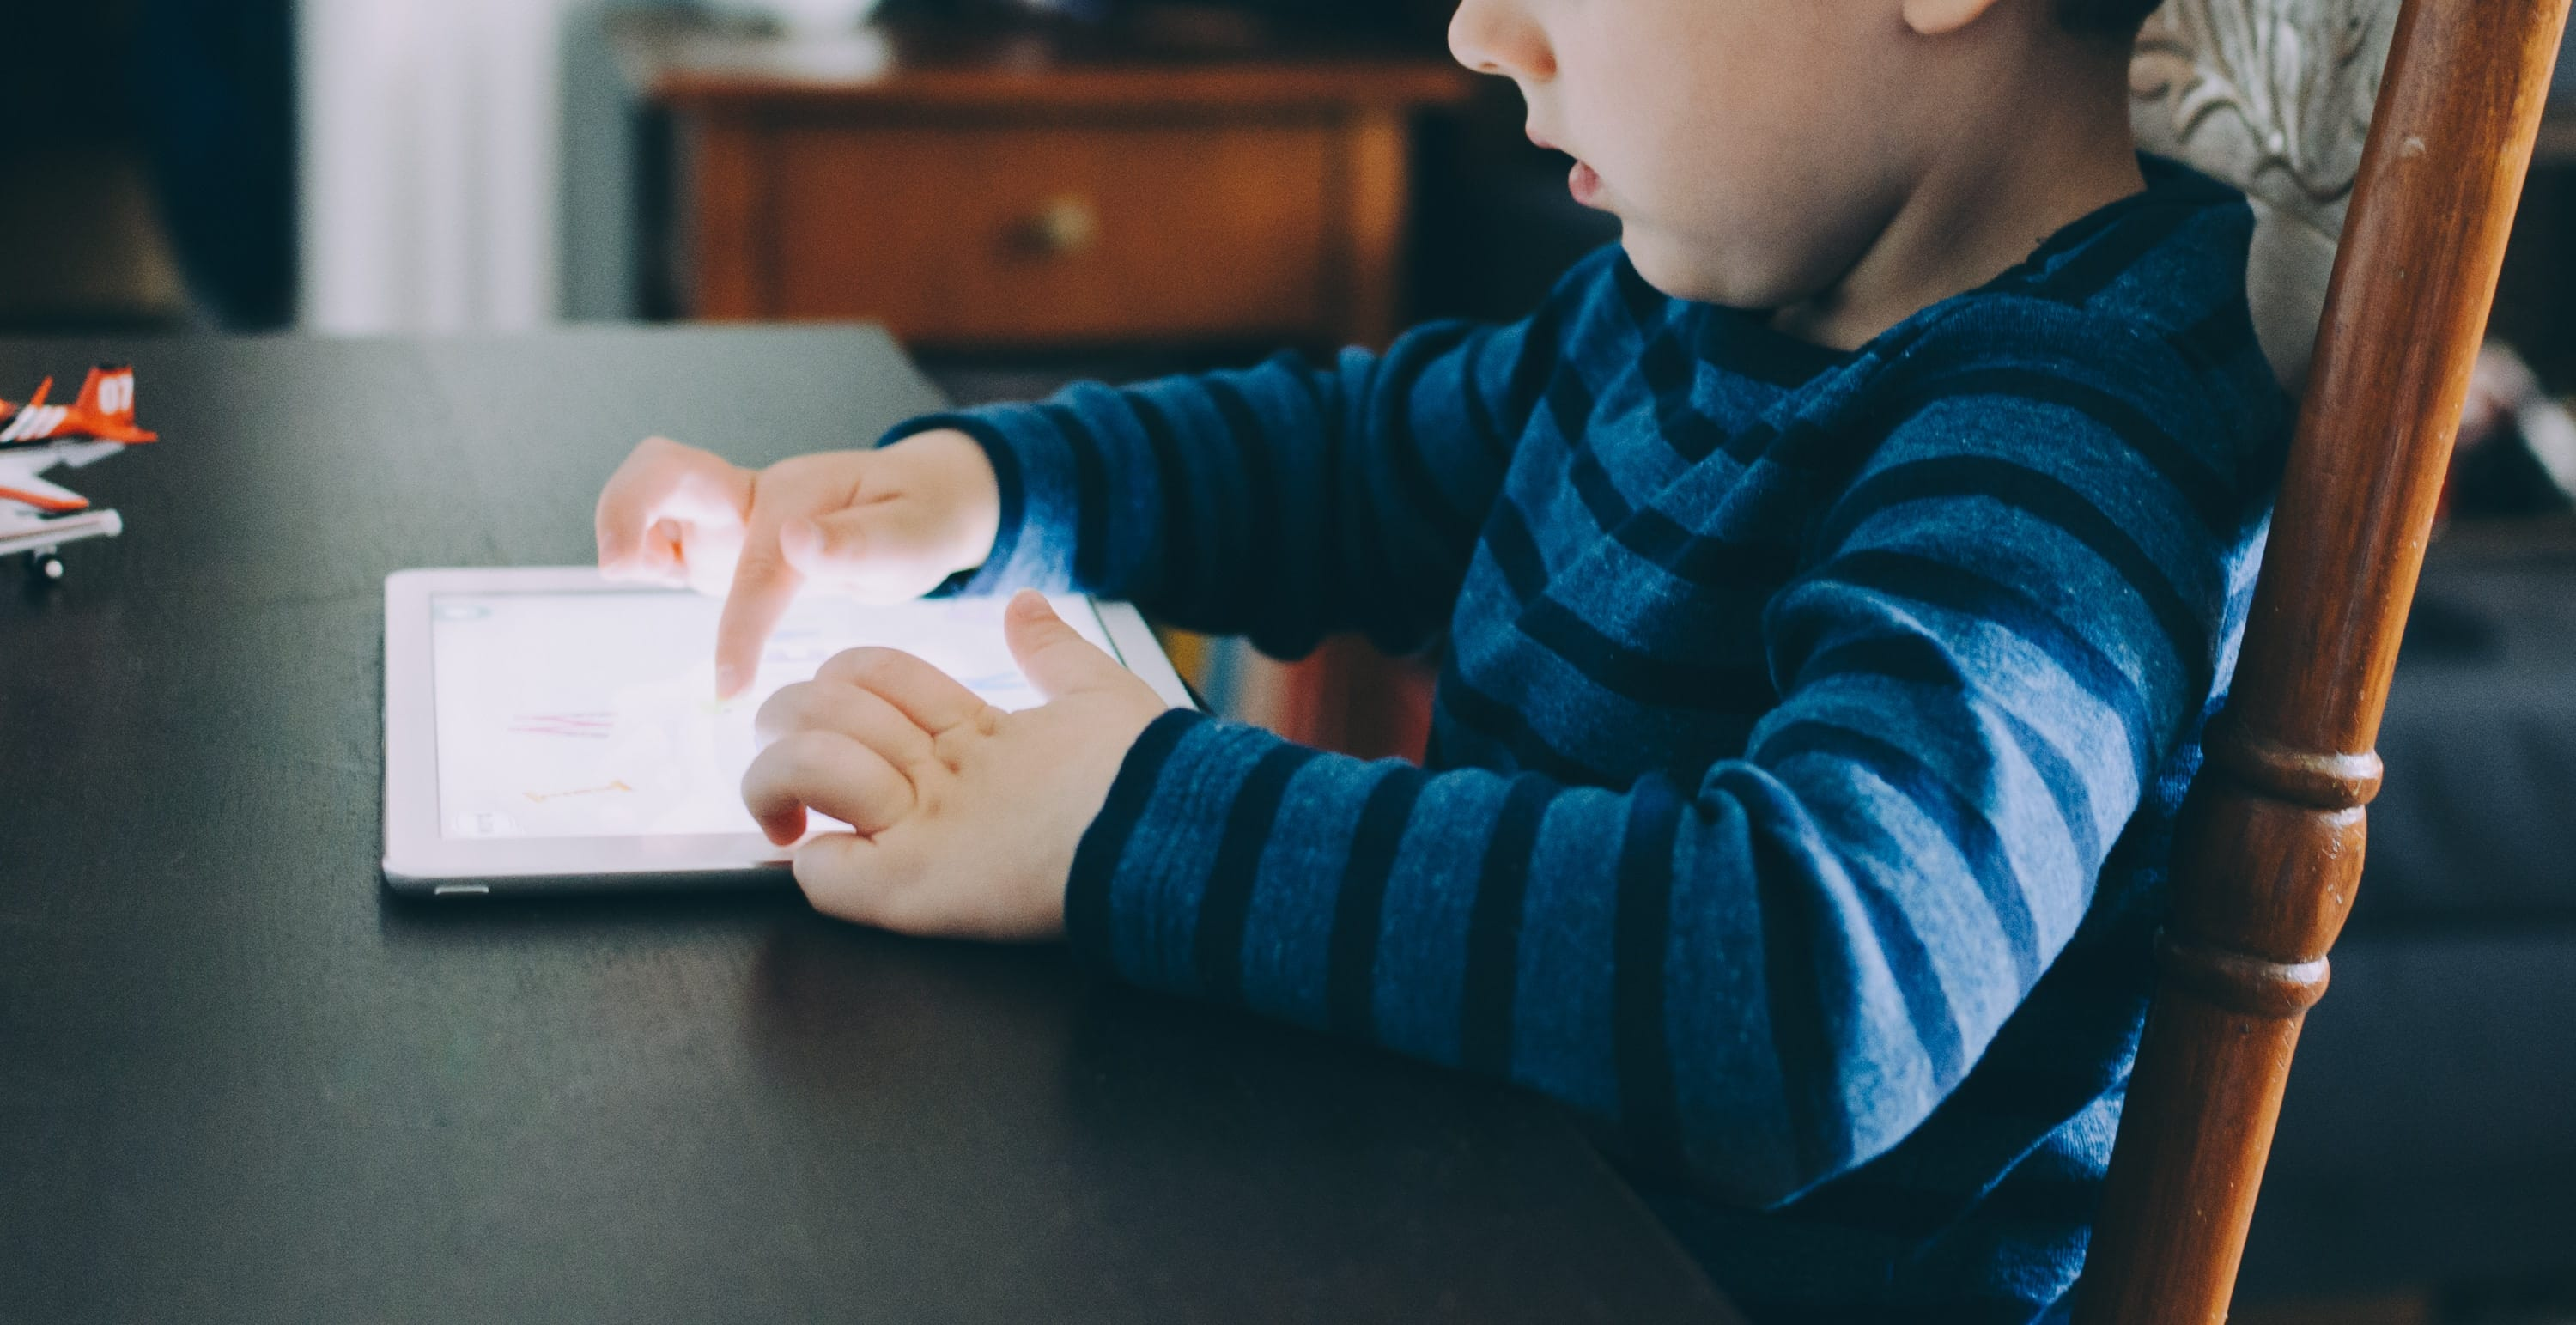 Young boy sitting at a table using a tablet computer; image by Kelly Sikkema, via unsplash.com.